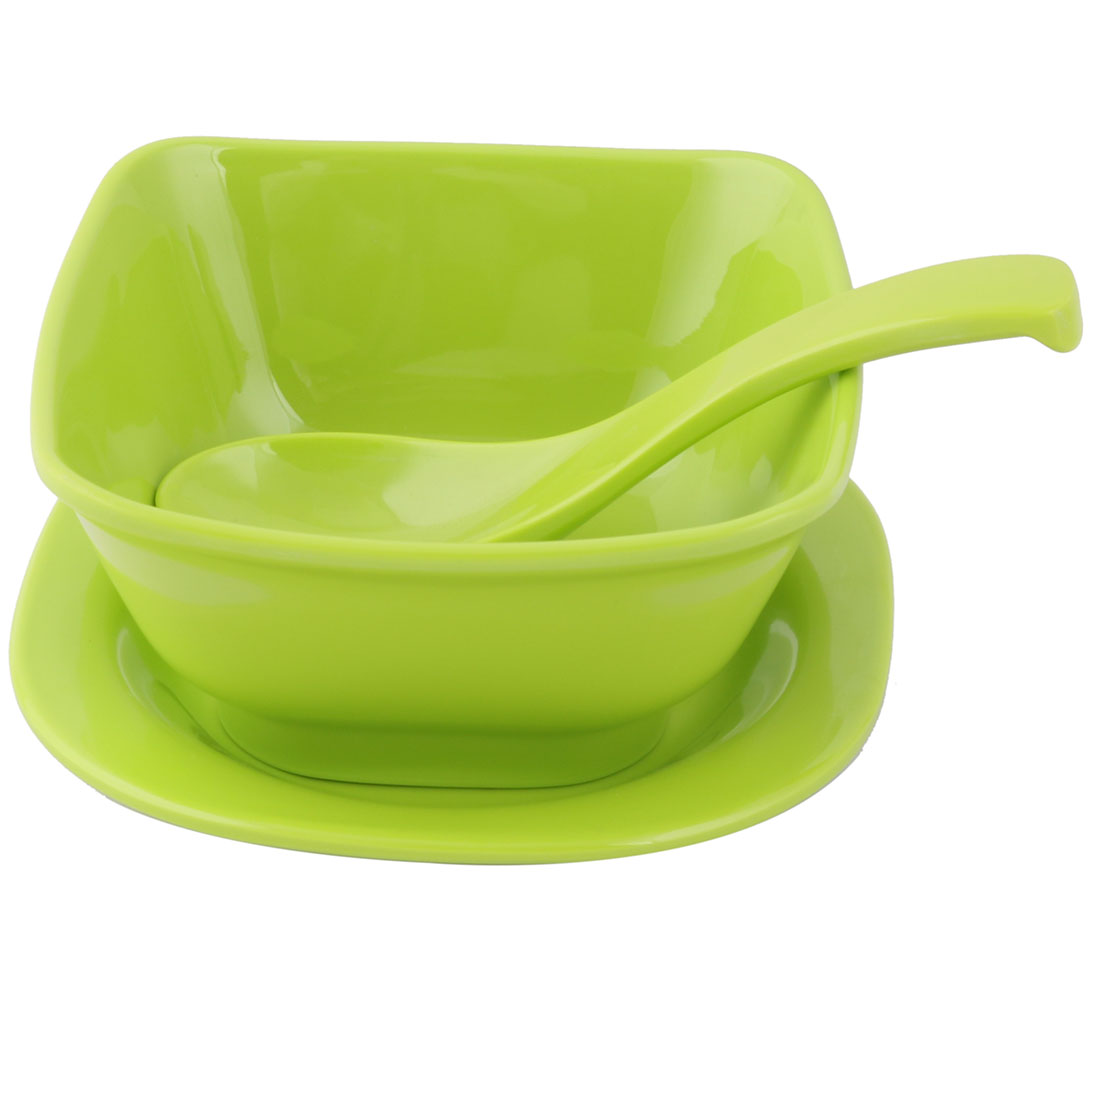 Home Kitchen Plastic Dinnerware Tableware Serving Spoon Bowl Plate Green 3 in 1